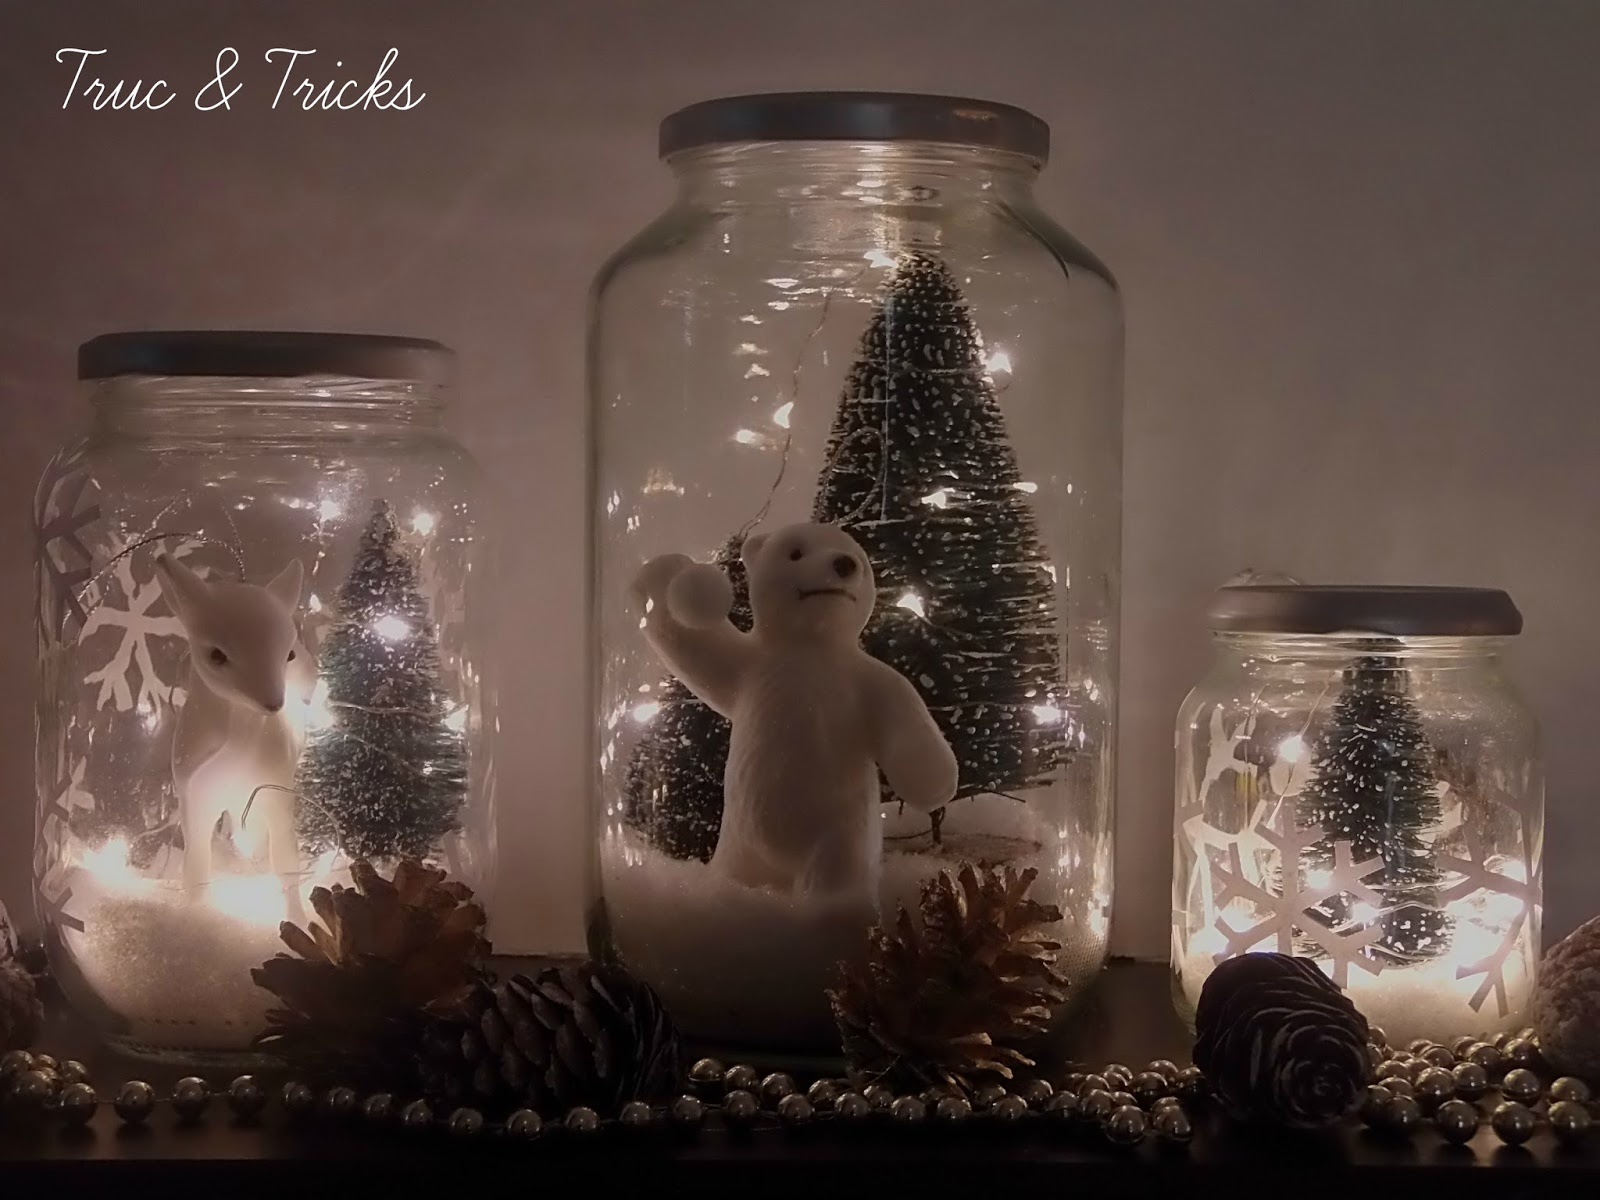 Top Déco de Noël DIY : Noël en bocal - Truc & Tricks PG01